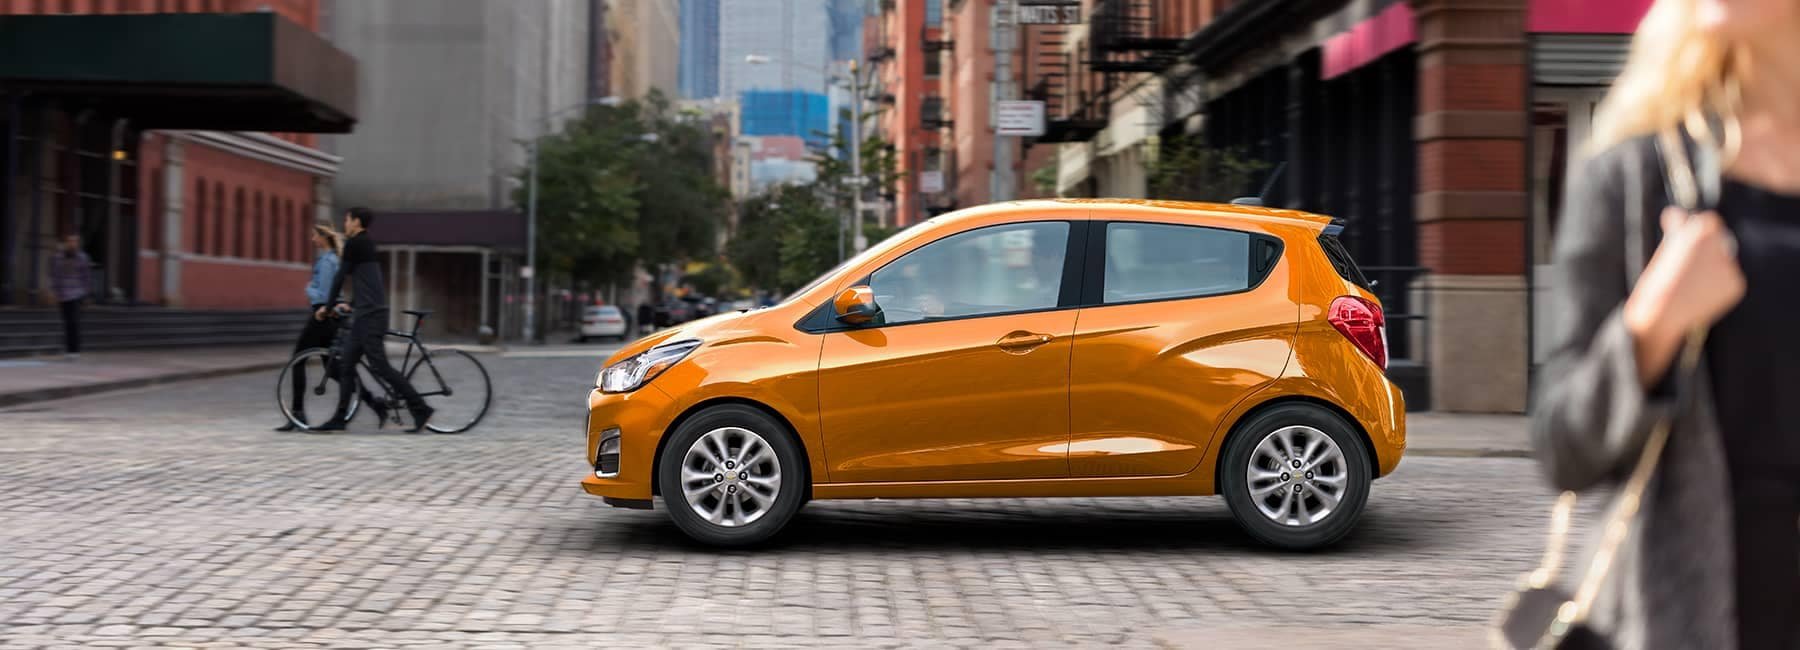 Orange 2020 Chevrolet Spark on a City Street